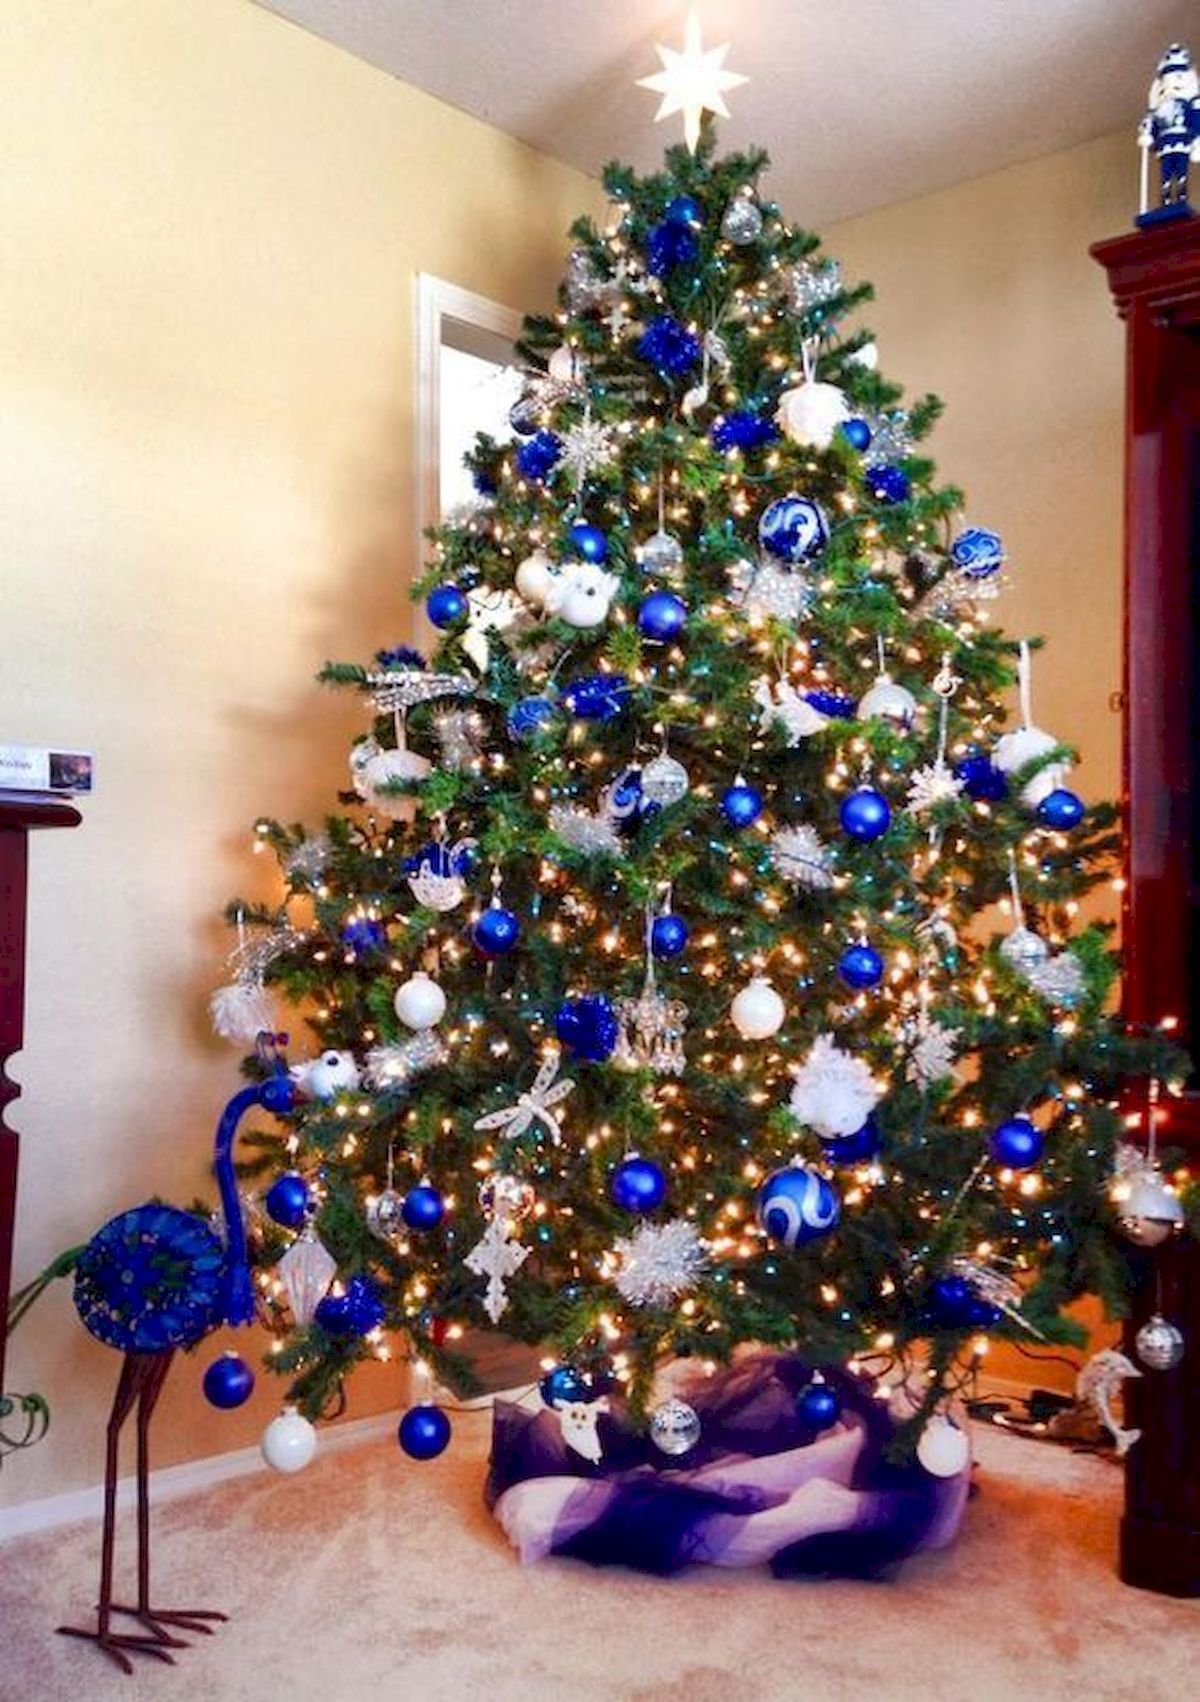 Christmas Tree Not Taking Water.60 Awesome Christmas Tree Decor Ideas Diy Home Decor